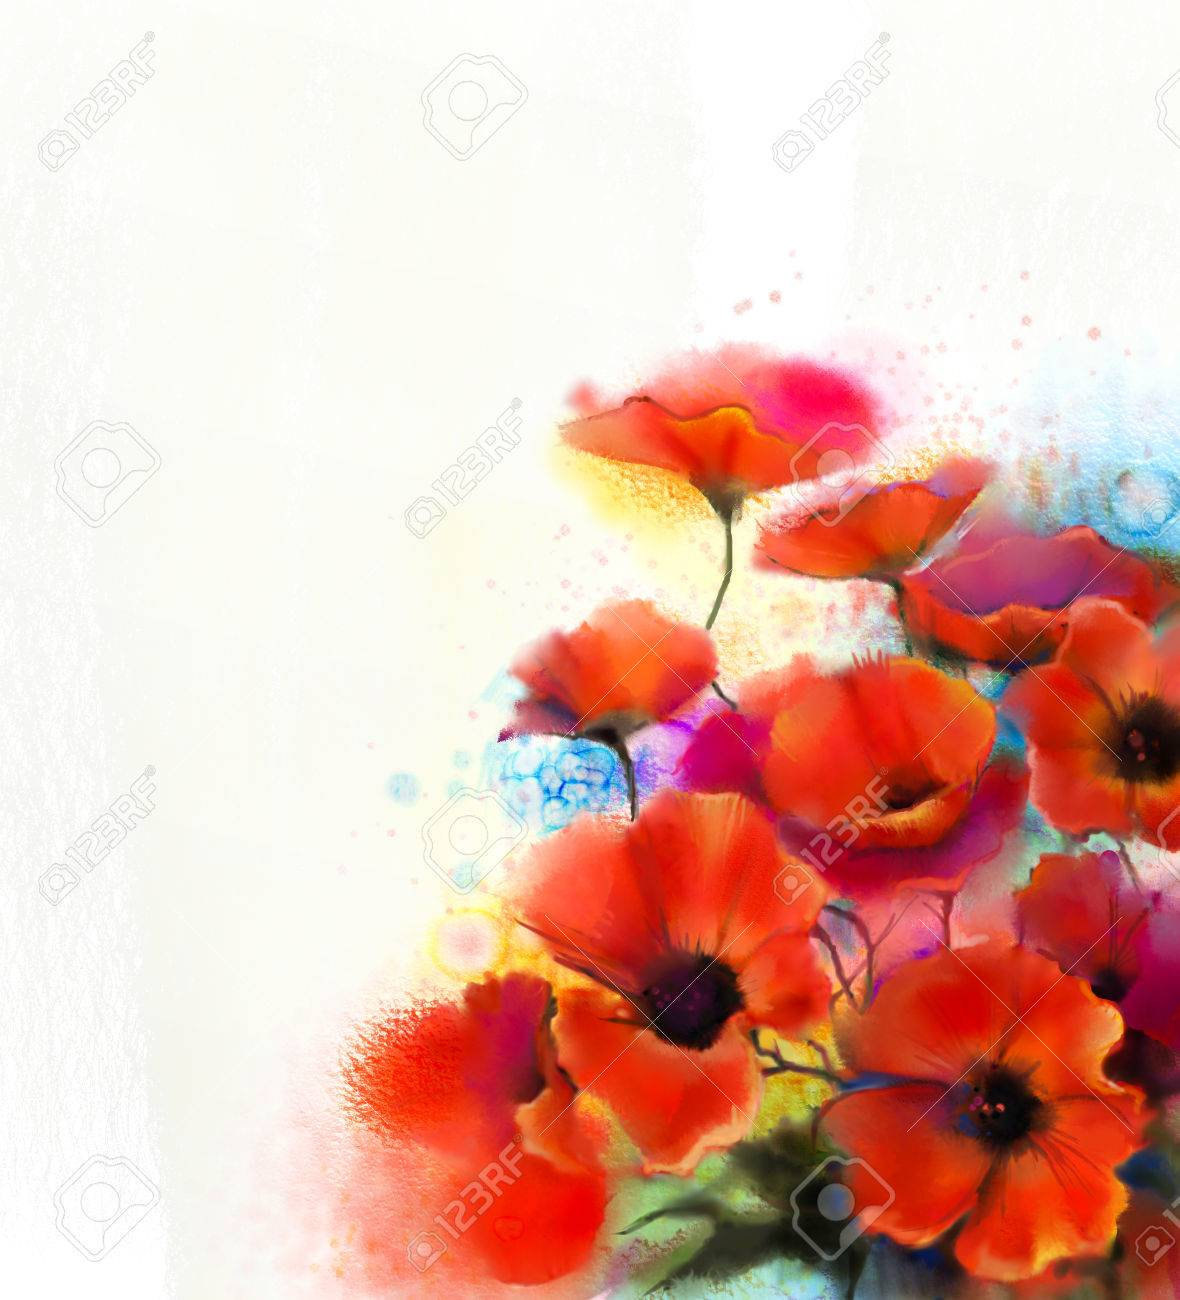 Watercolor red poppy flower painting hand paint poppies flowers stock photo watercolor red poppy flower painting hand paint poppies flowers in soft color and blur style white color background mightylinksfo